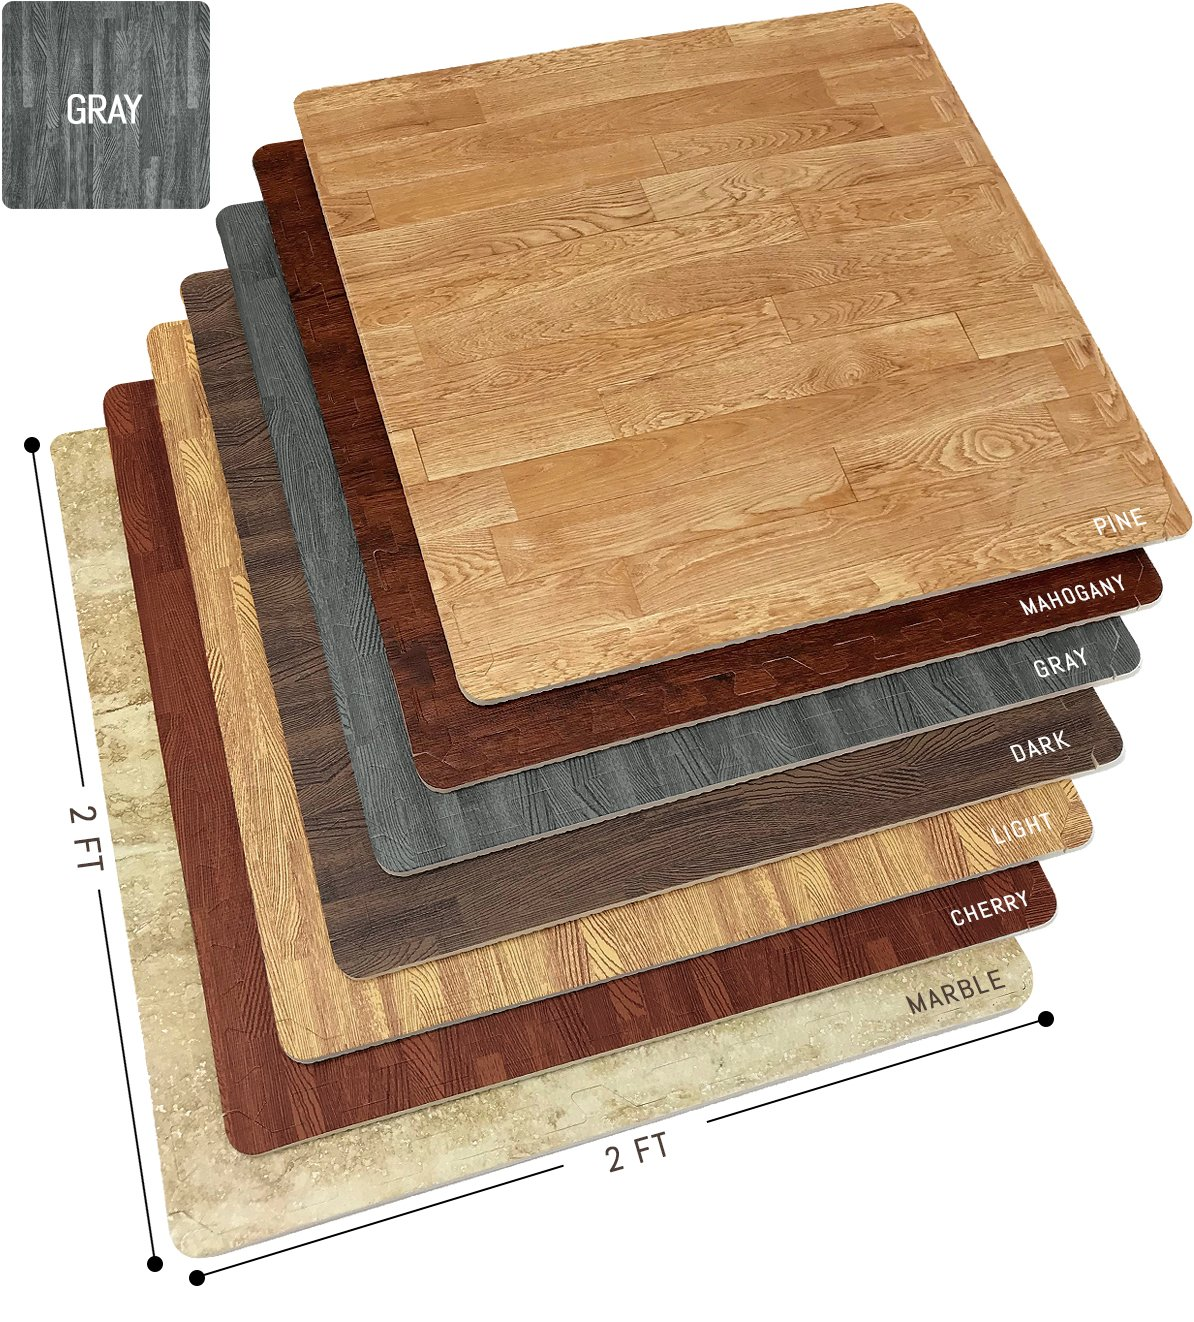 Sorbus Wood Floor Mats Foam Interlocking Wood Mats Each Tile 4 Square Feet 3/8-Inch Thick Puzzle Wood Tiles with Borders – for Home Office Playroom Basement (12 Tiles 48 Sq ft, Wood Grain - Gray) by Sorbus (Image #1)